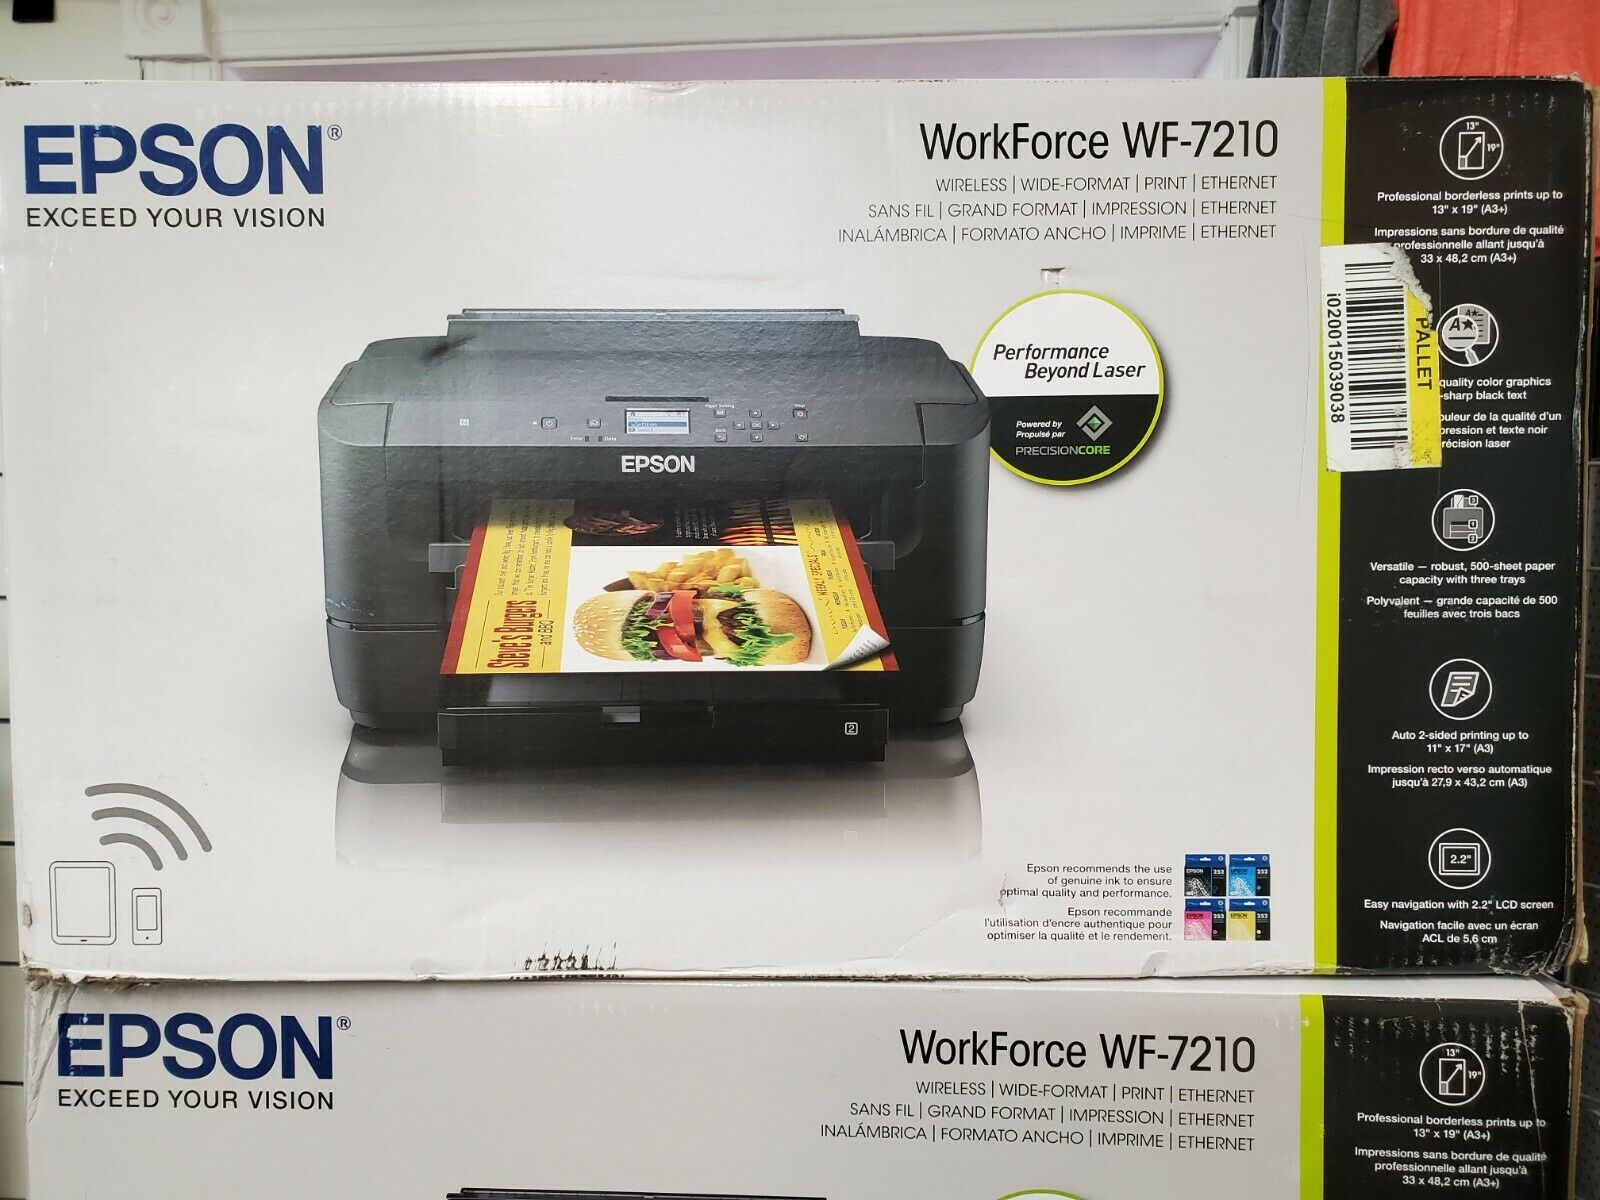 New Epson WorkForce WF-7210 Wireless Wide Format Color Print